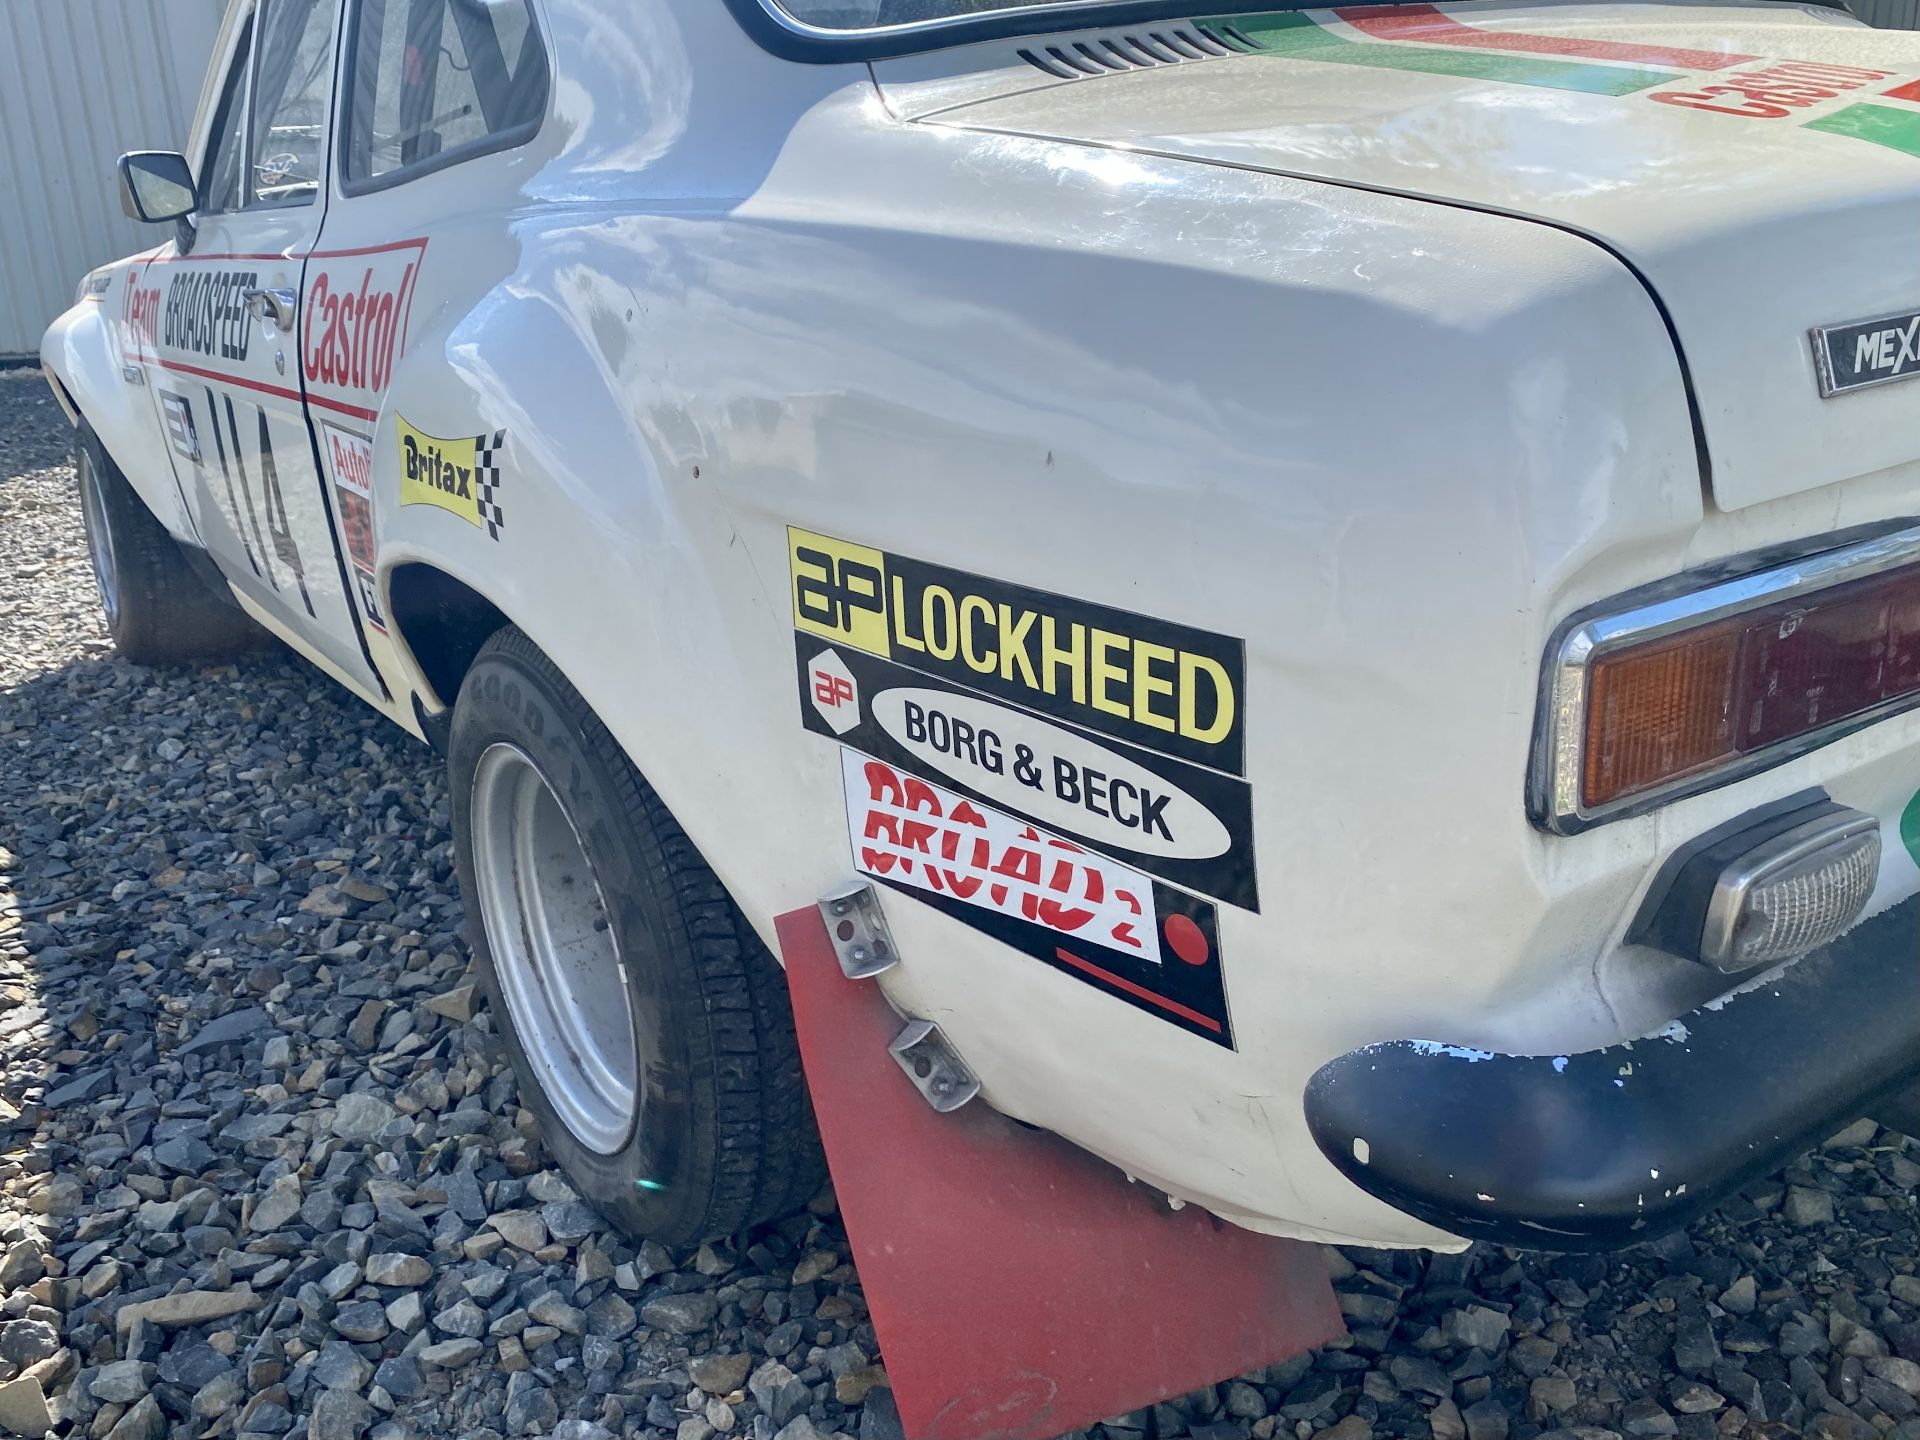 Ford Escort Mexico - Image 31 of 51